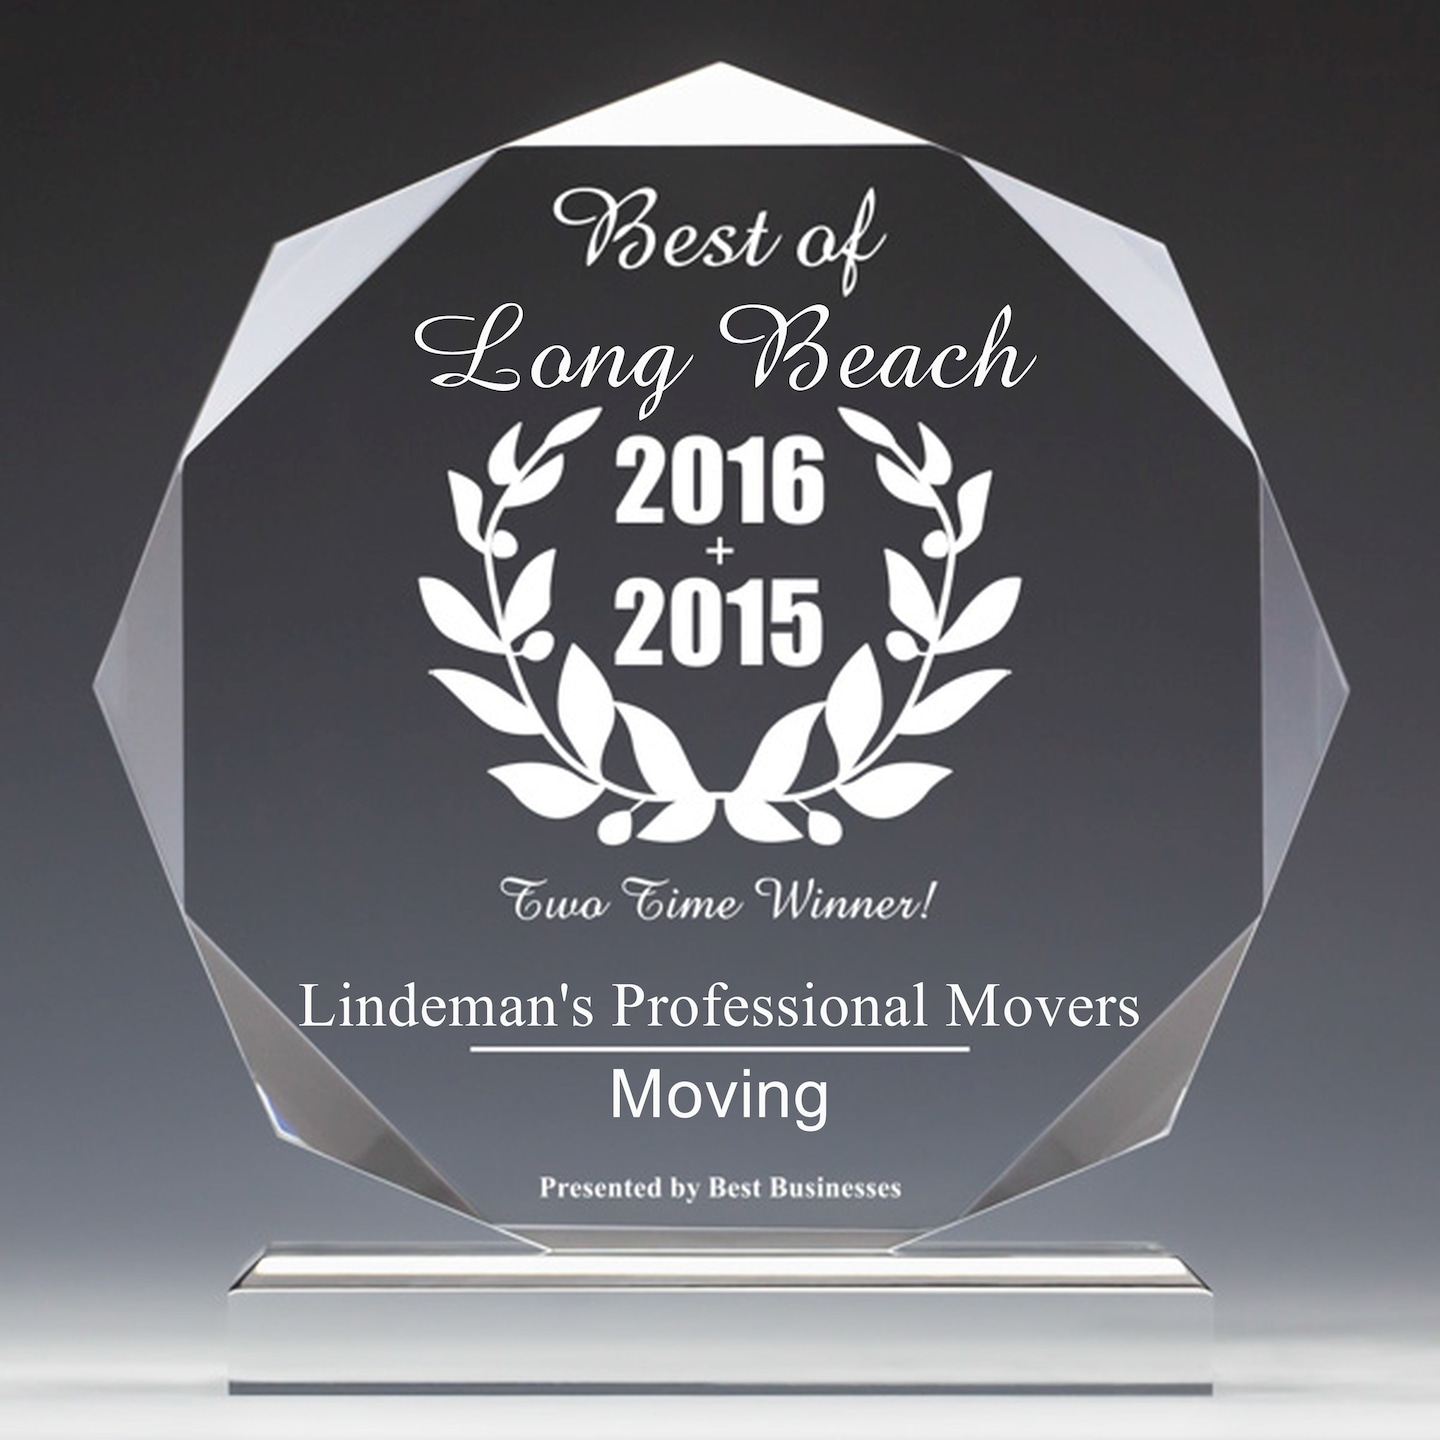 LINDEMAN'S PROFESSIONAL MOVERS